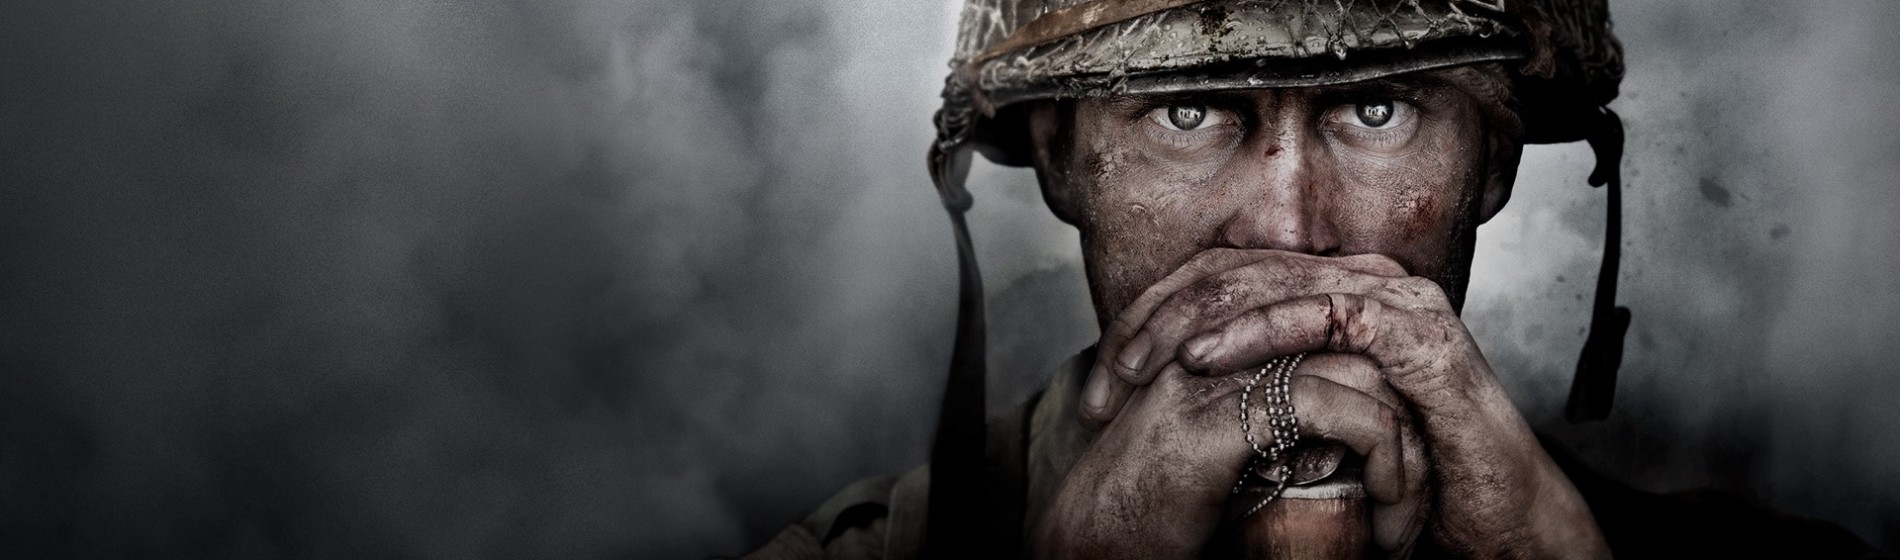 CoD-WWII-Large